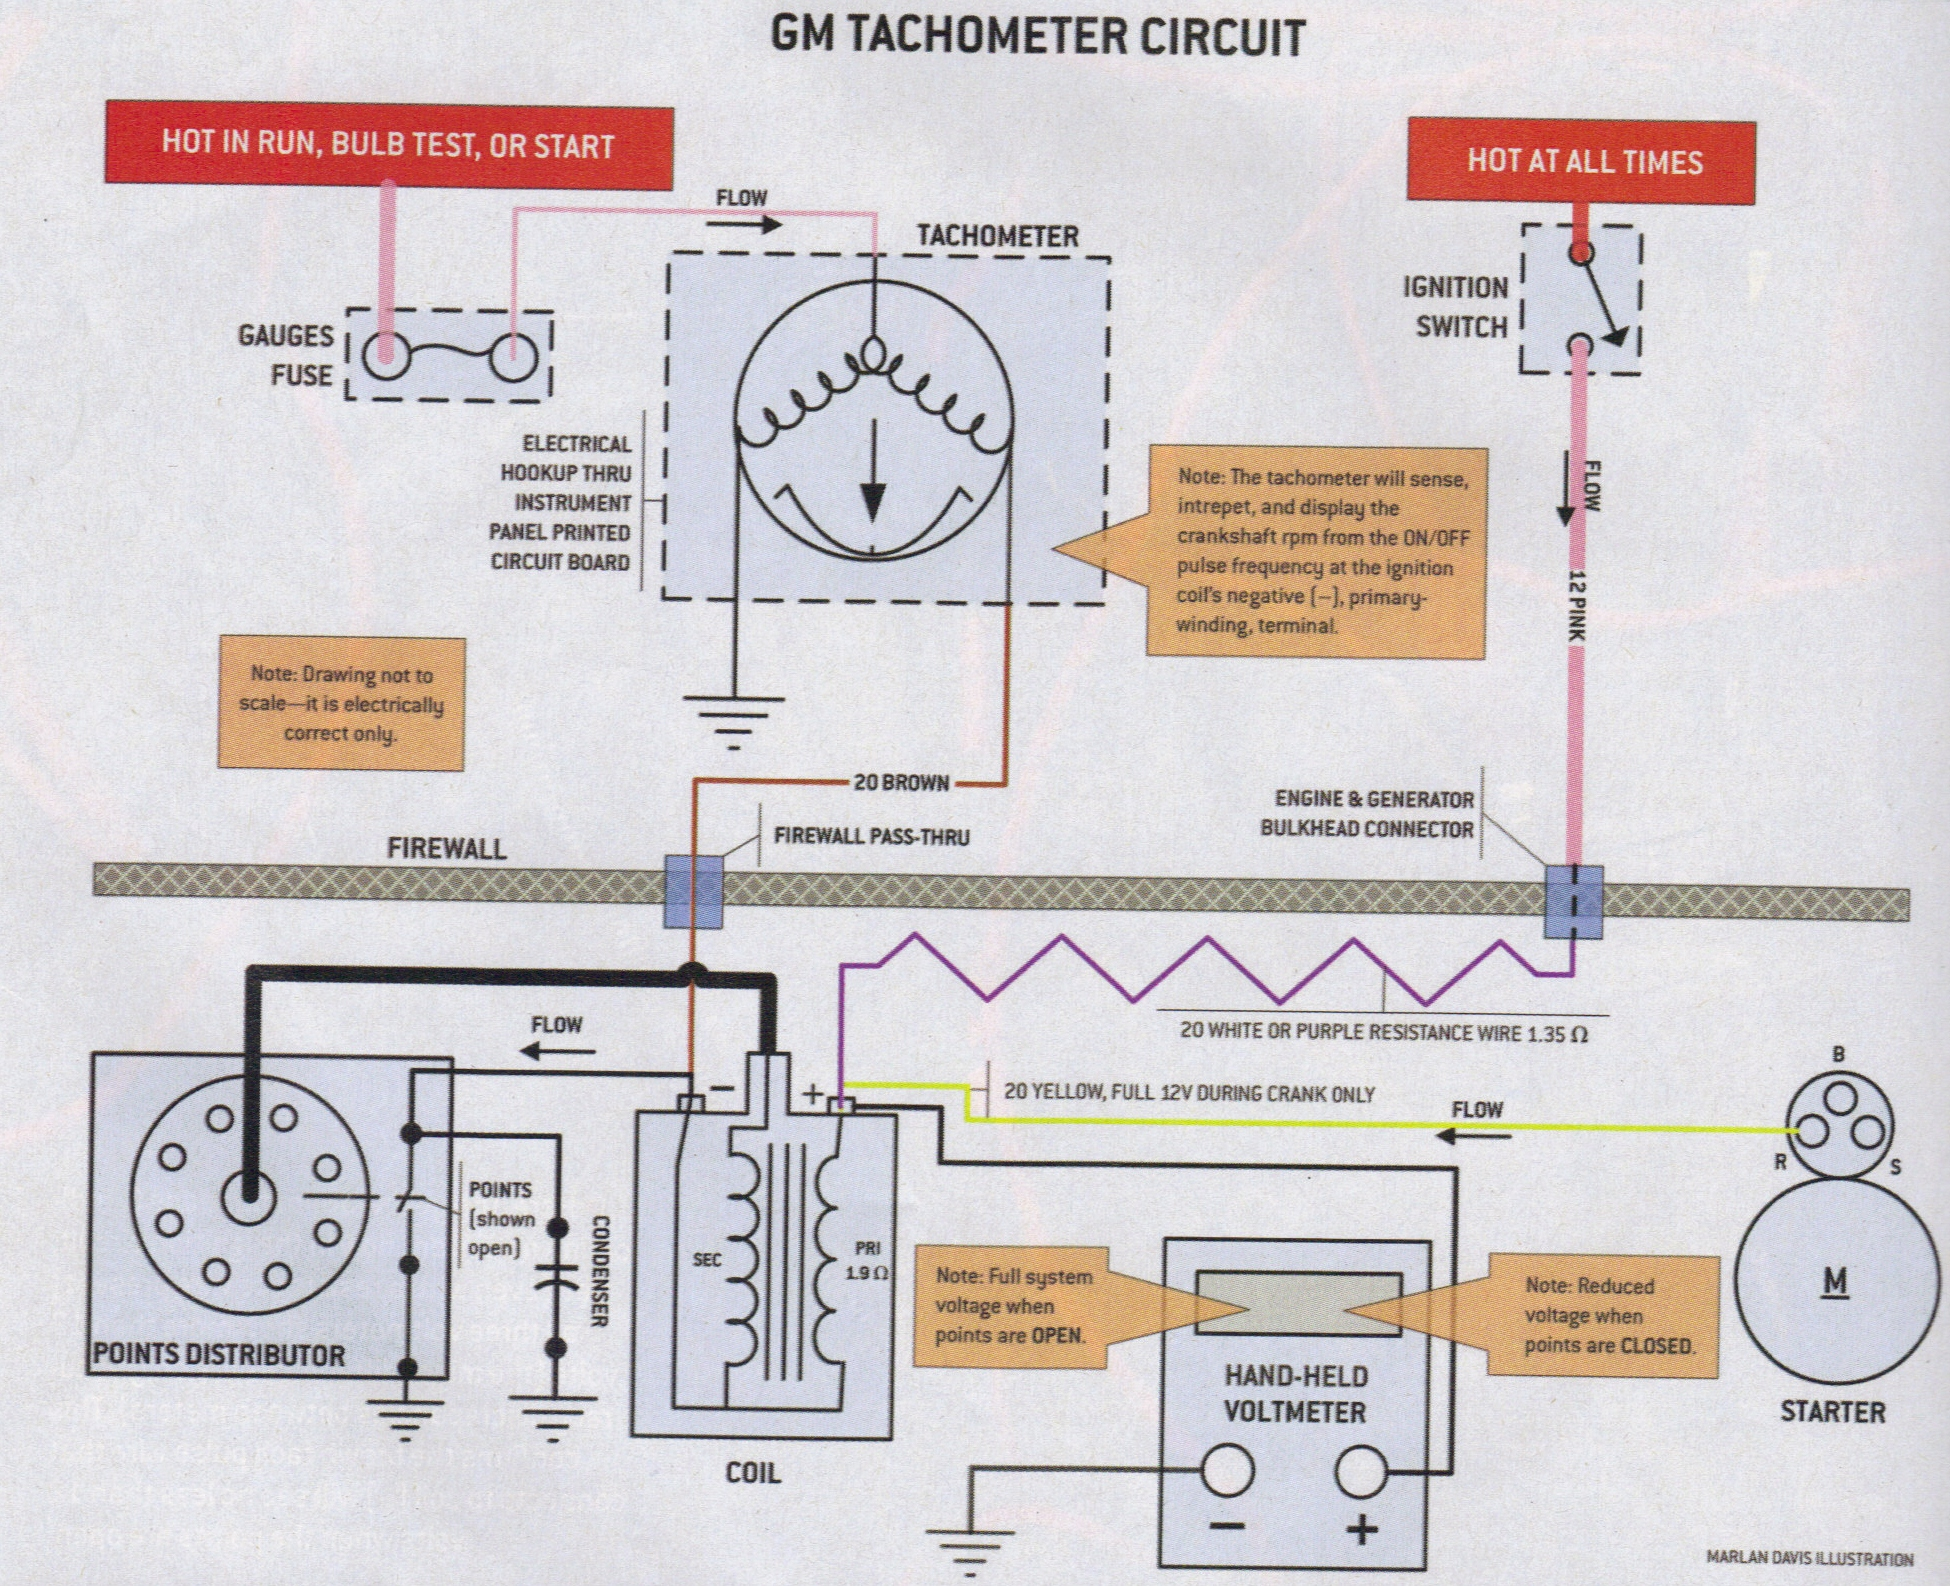 67 Chevelle Tachometer Wiring Diagram New Wiring Diagram